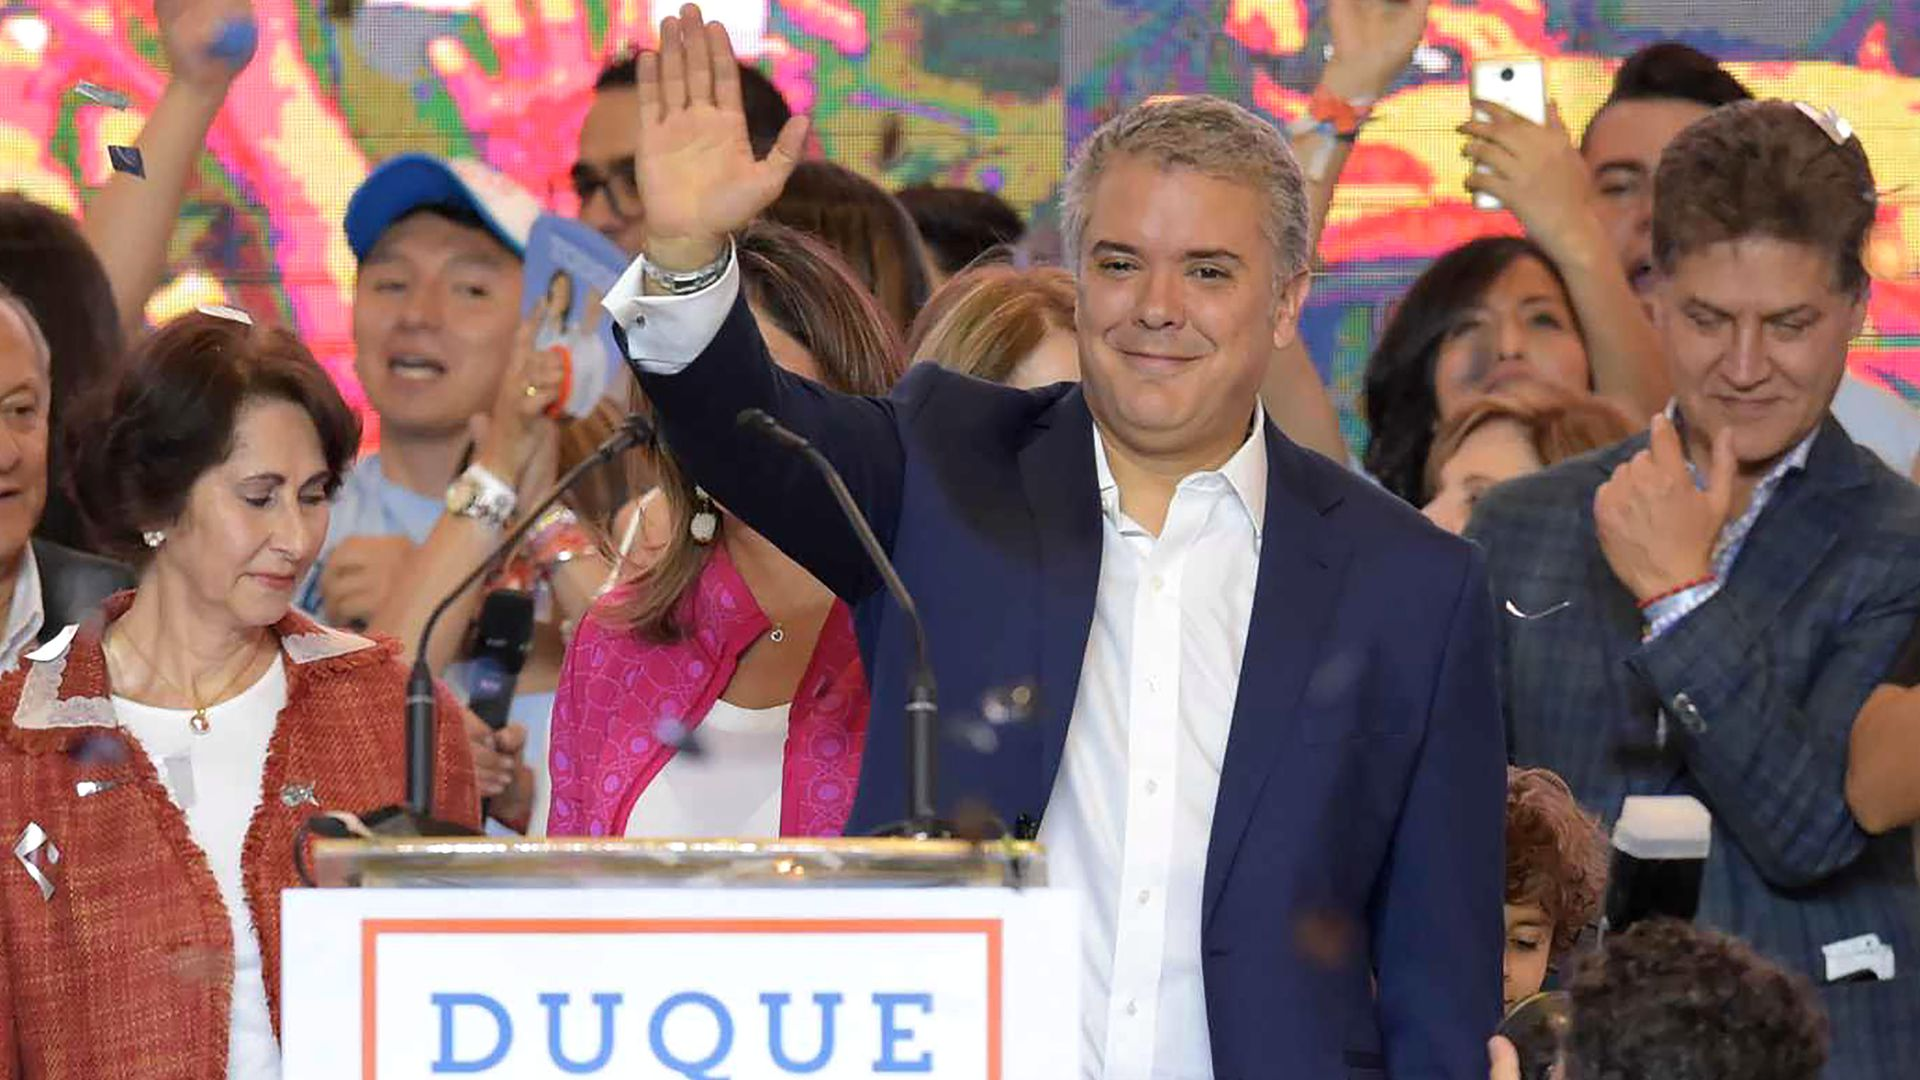 Ivan Duque waves to a crowd of supporters